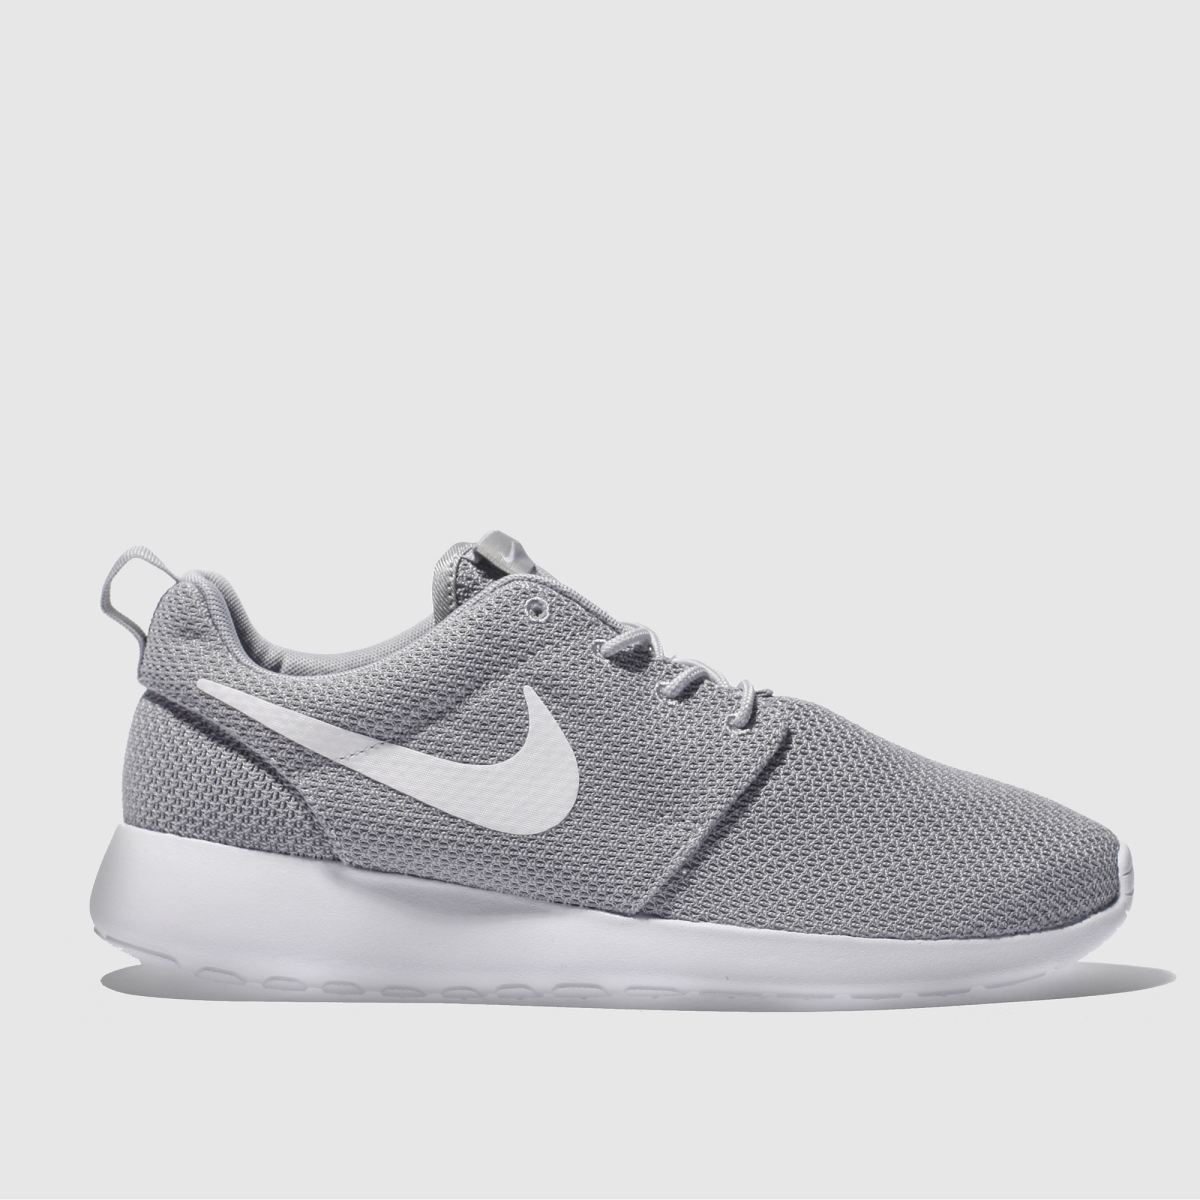 All White Nike Toddler Shoes